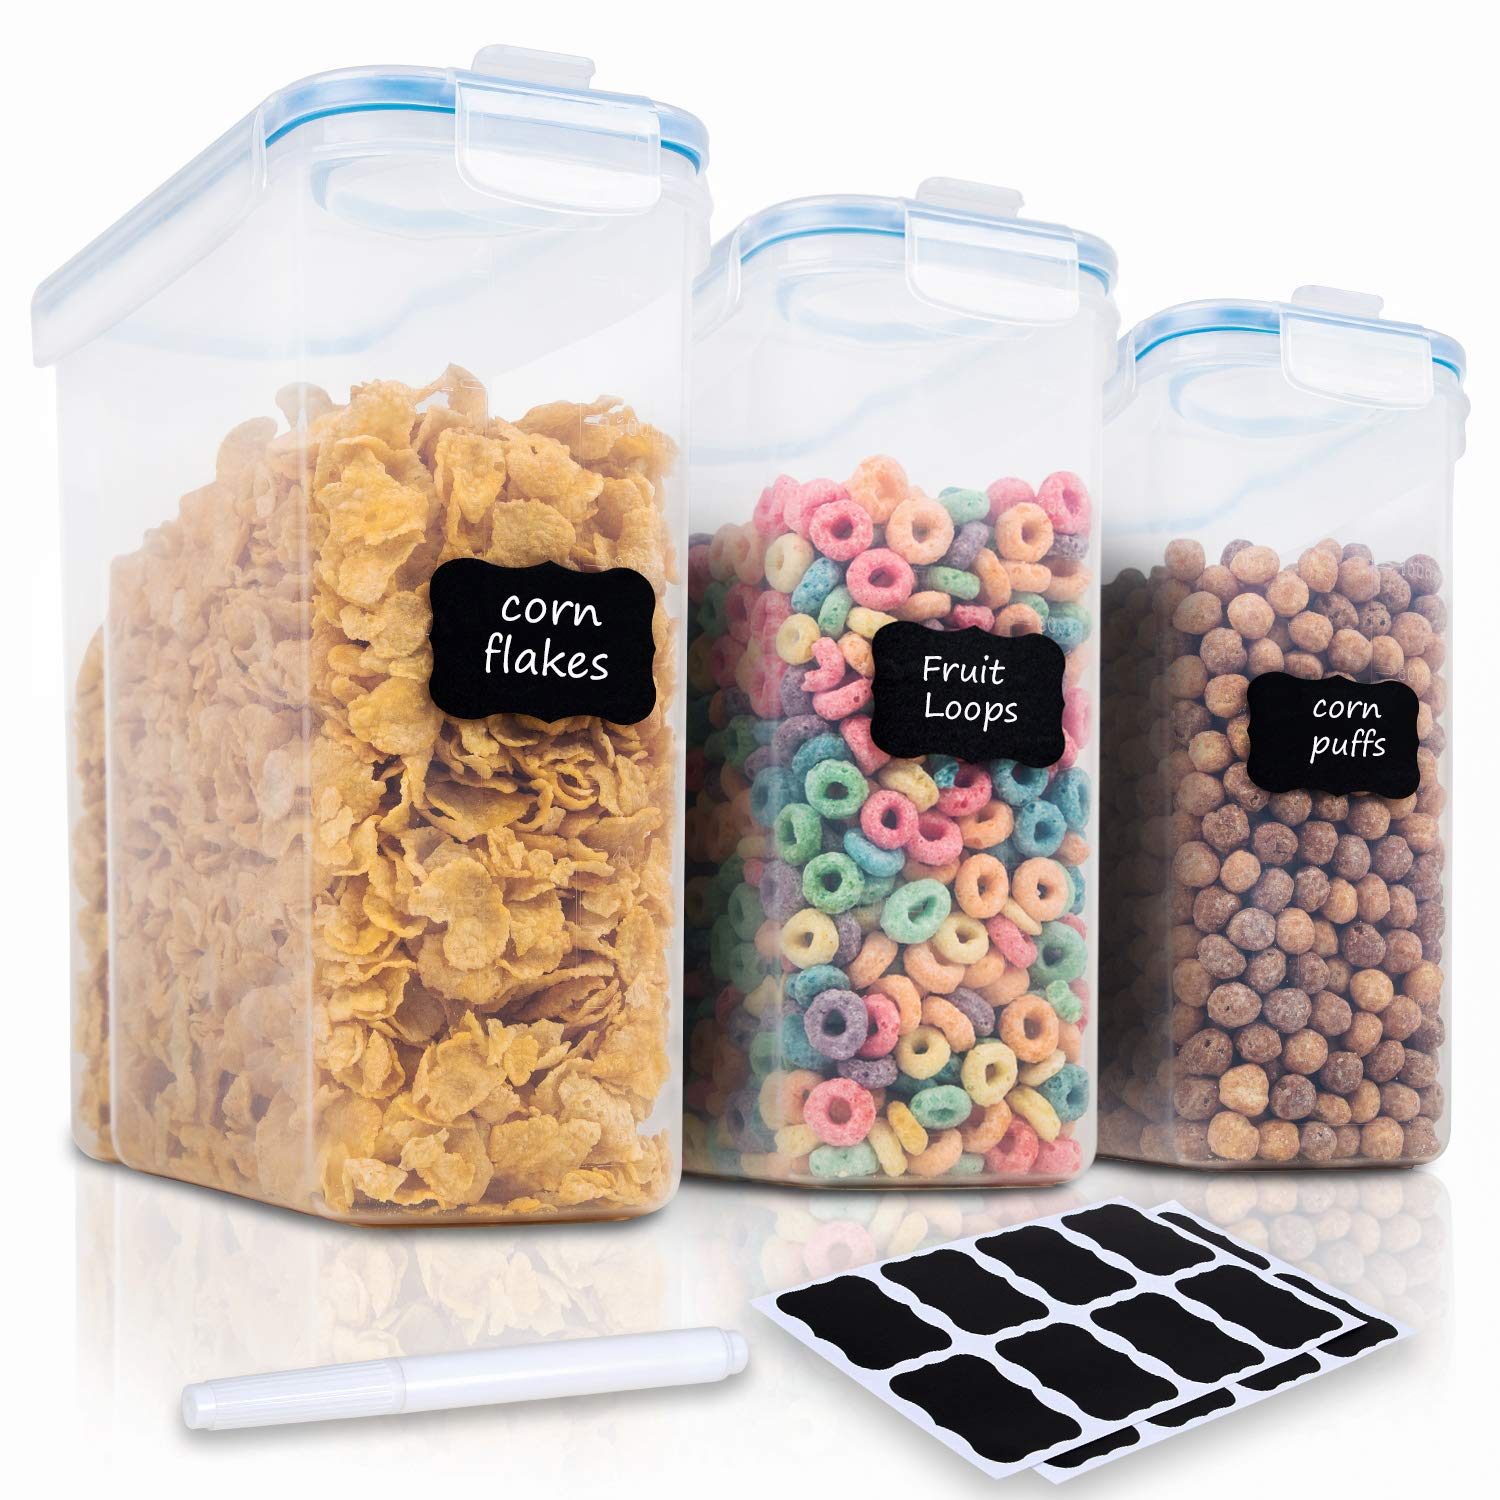 Cereal Container Set - 3 Piece Airtight Large Dry Food Storage Containers(135.2oz), BPA Free Dispenser Plastic Cereal Storage Containers with 16 Labels & Pen - FOOYOO